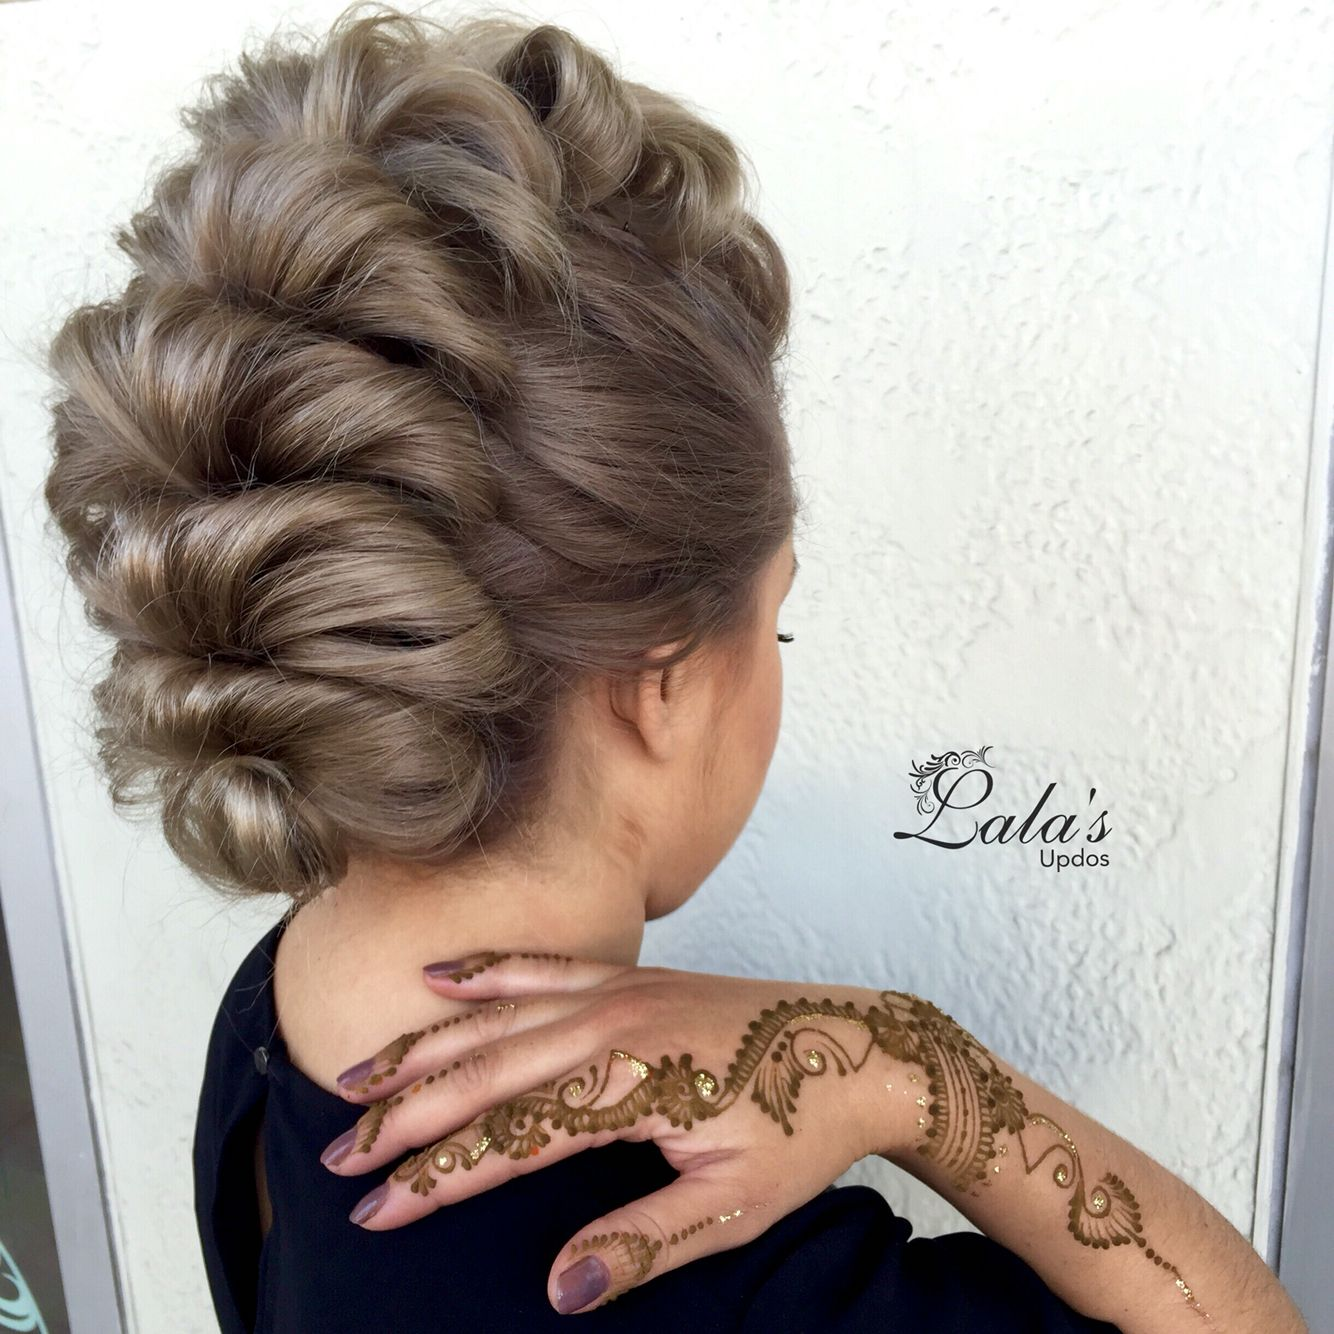 Pin by lina betancourt on hair pinterest updos hair style and